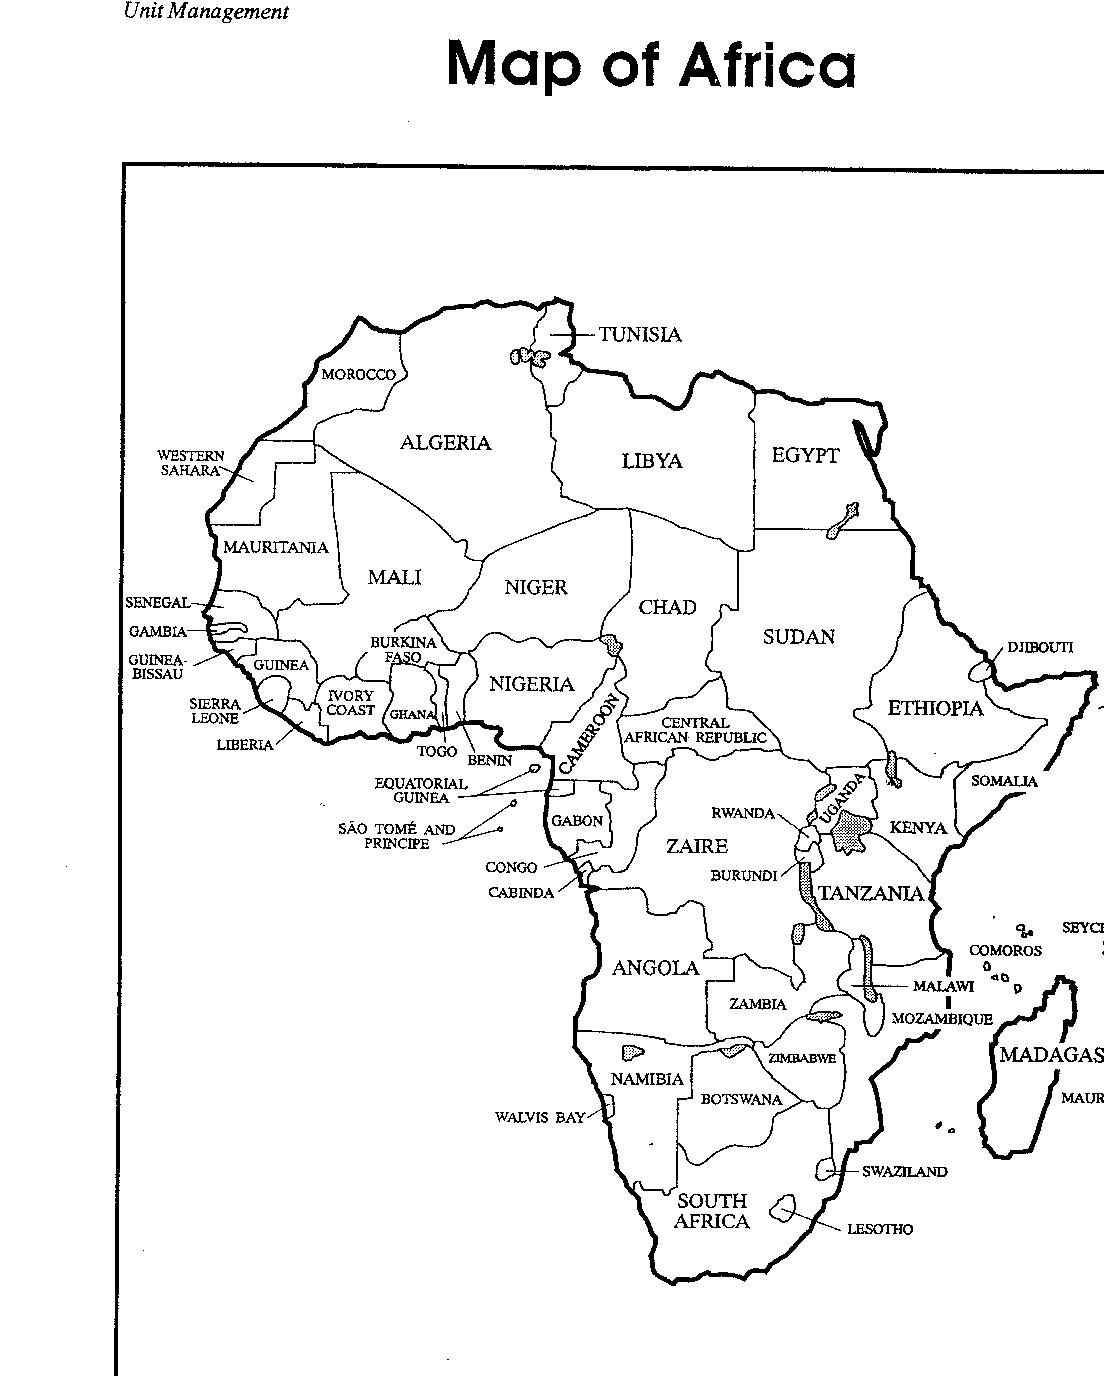 coloring pages africa - photo#1